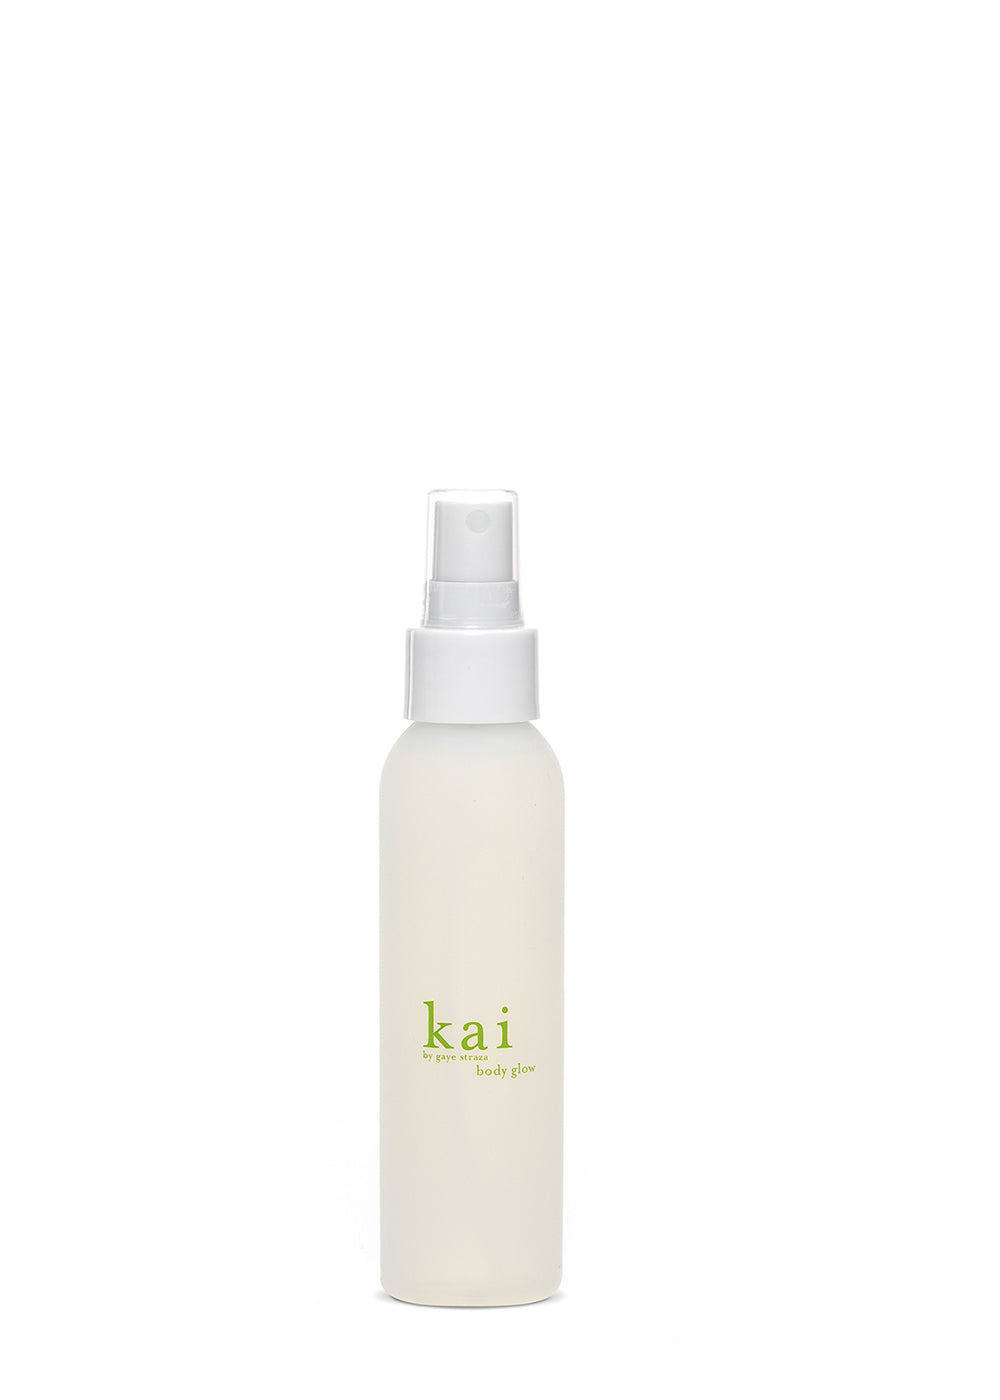 Kai fragrance glow